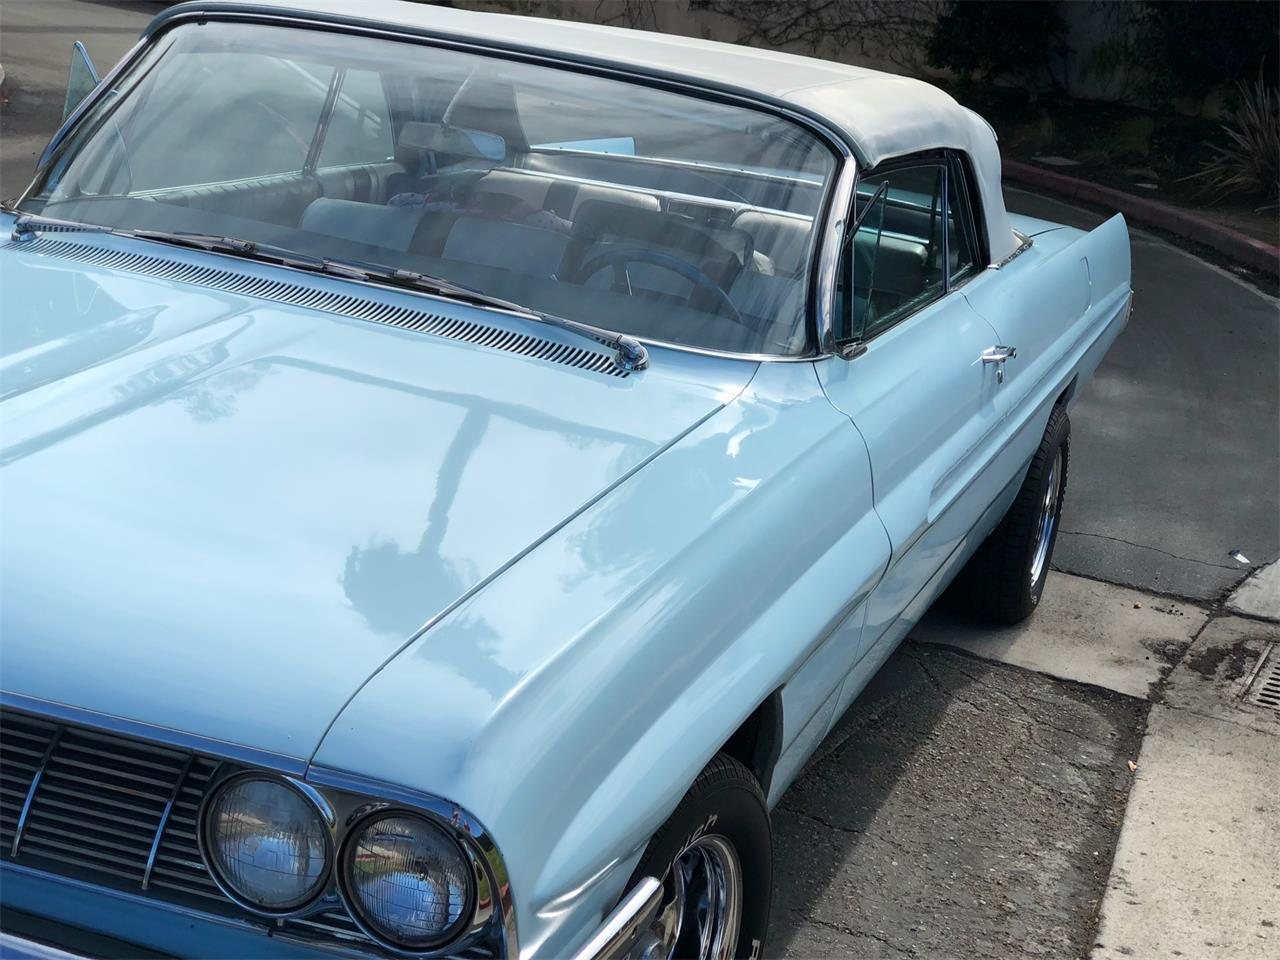 Large Picture of 1961 Pontiac Bonneville located in California - $18,995.00 Offered by a Private Seller - ASQZ